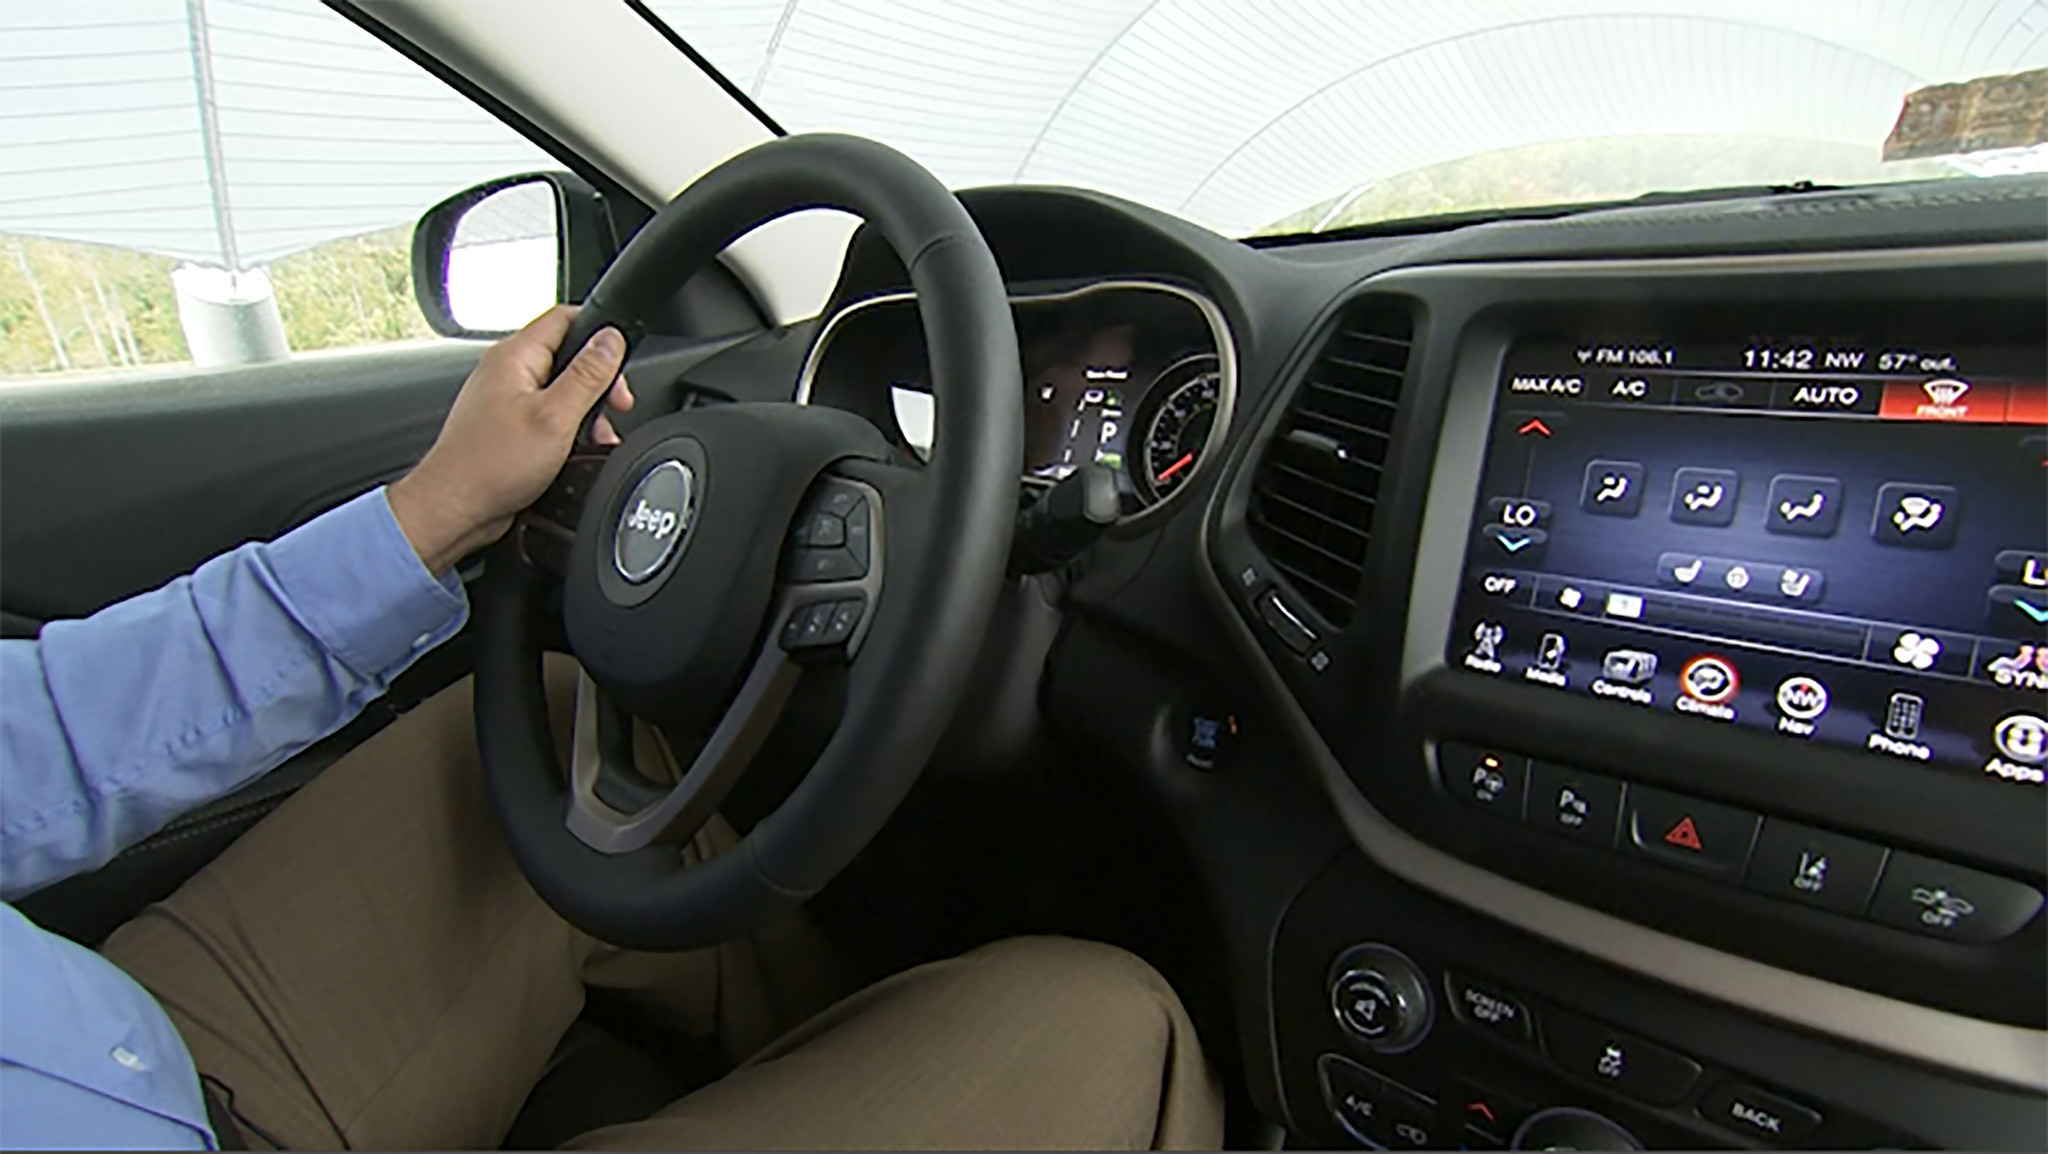 new auto safety technologies leave some drivers bewildered chicago tribune. Black Bedroom Furniture Sets. Home Design Ideas